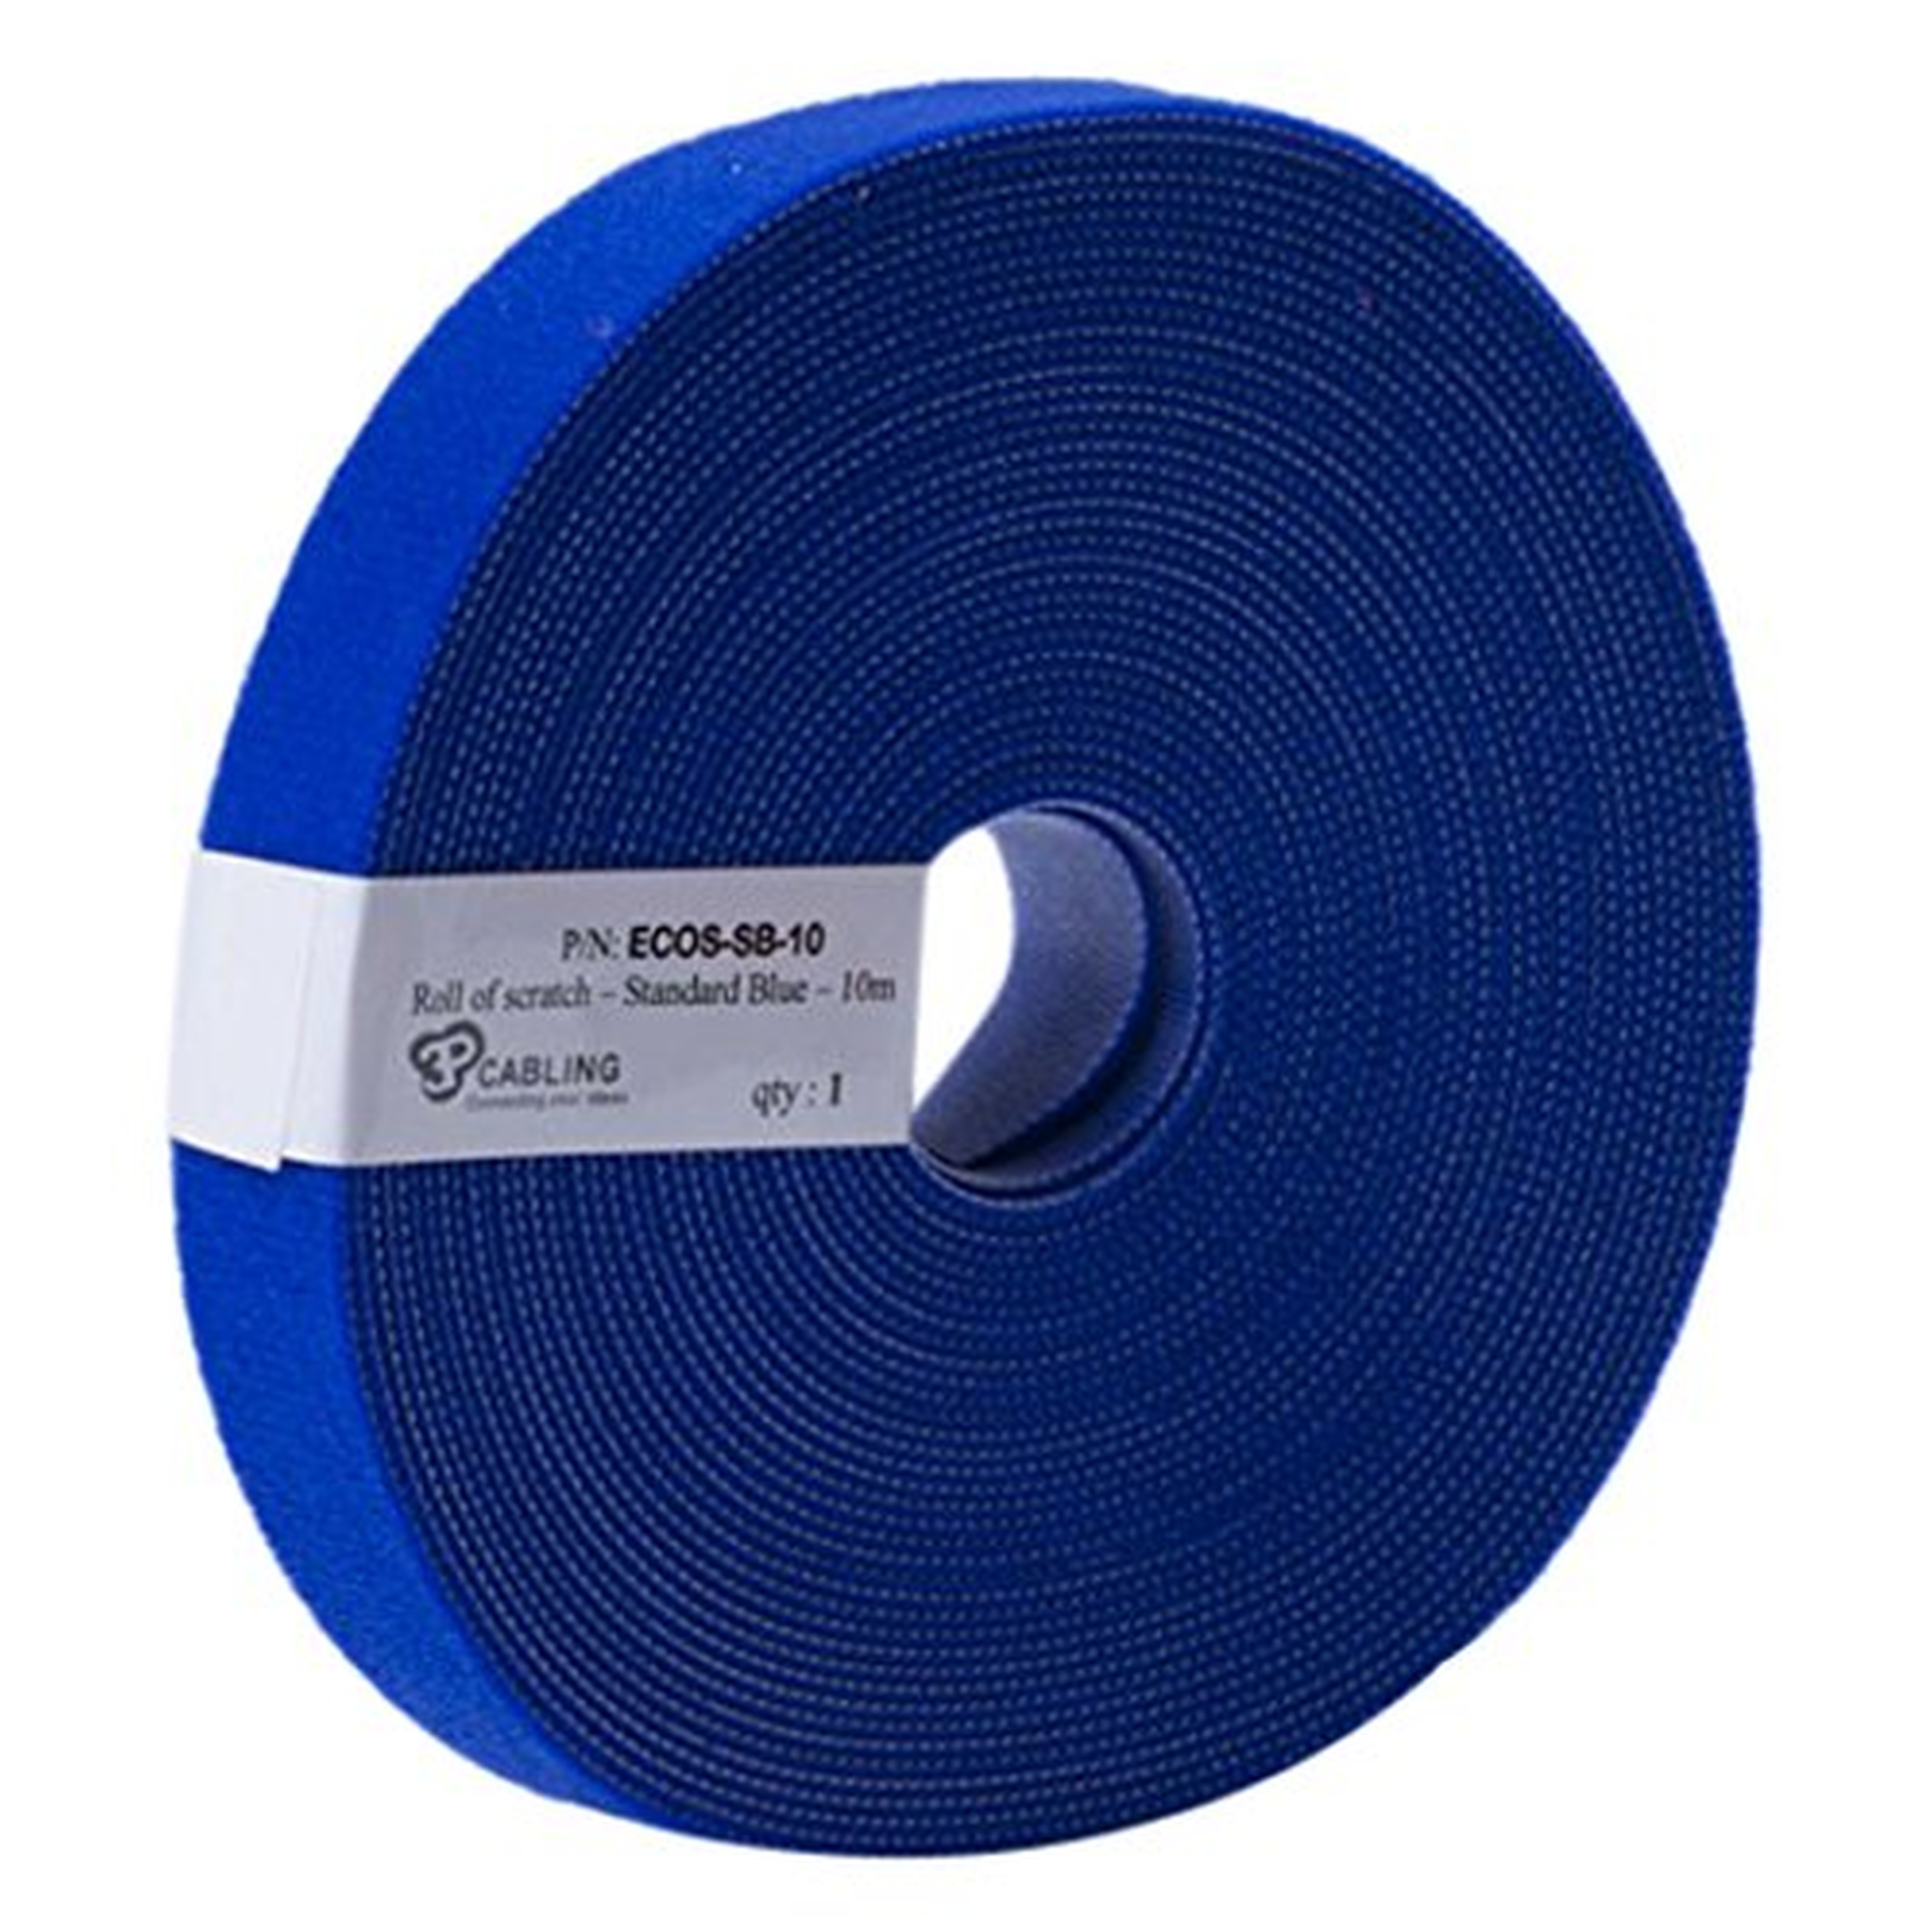 Patchsee Eco-Scratch, Kabelbinder, 10m lang,19mm breit, blau